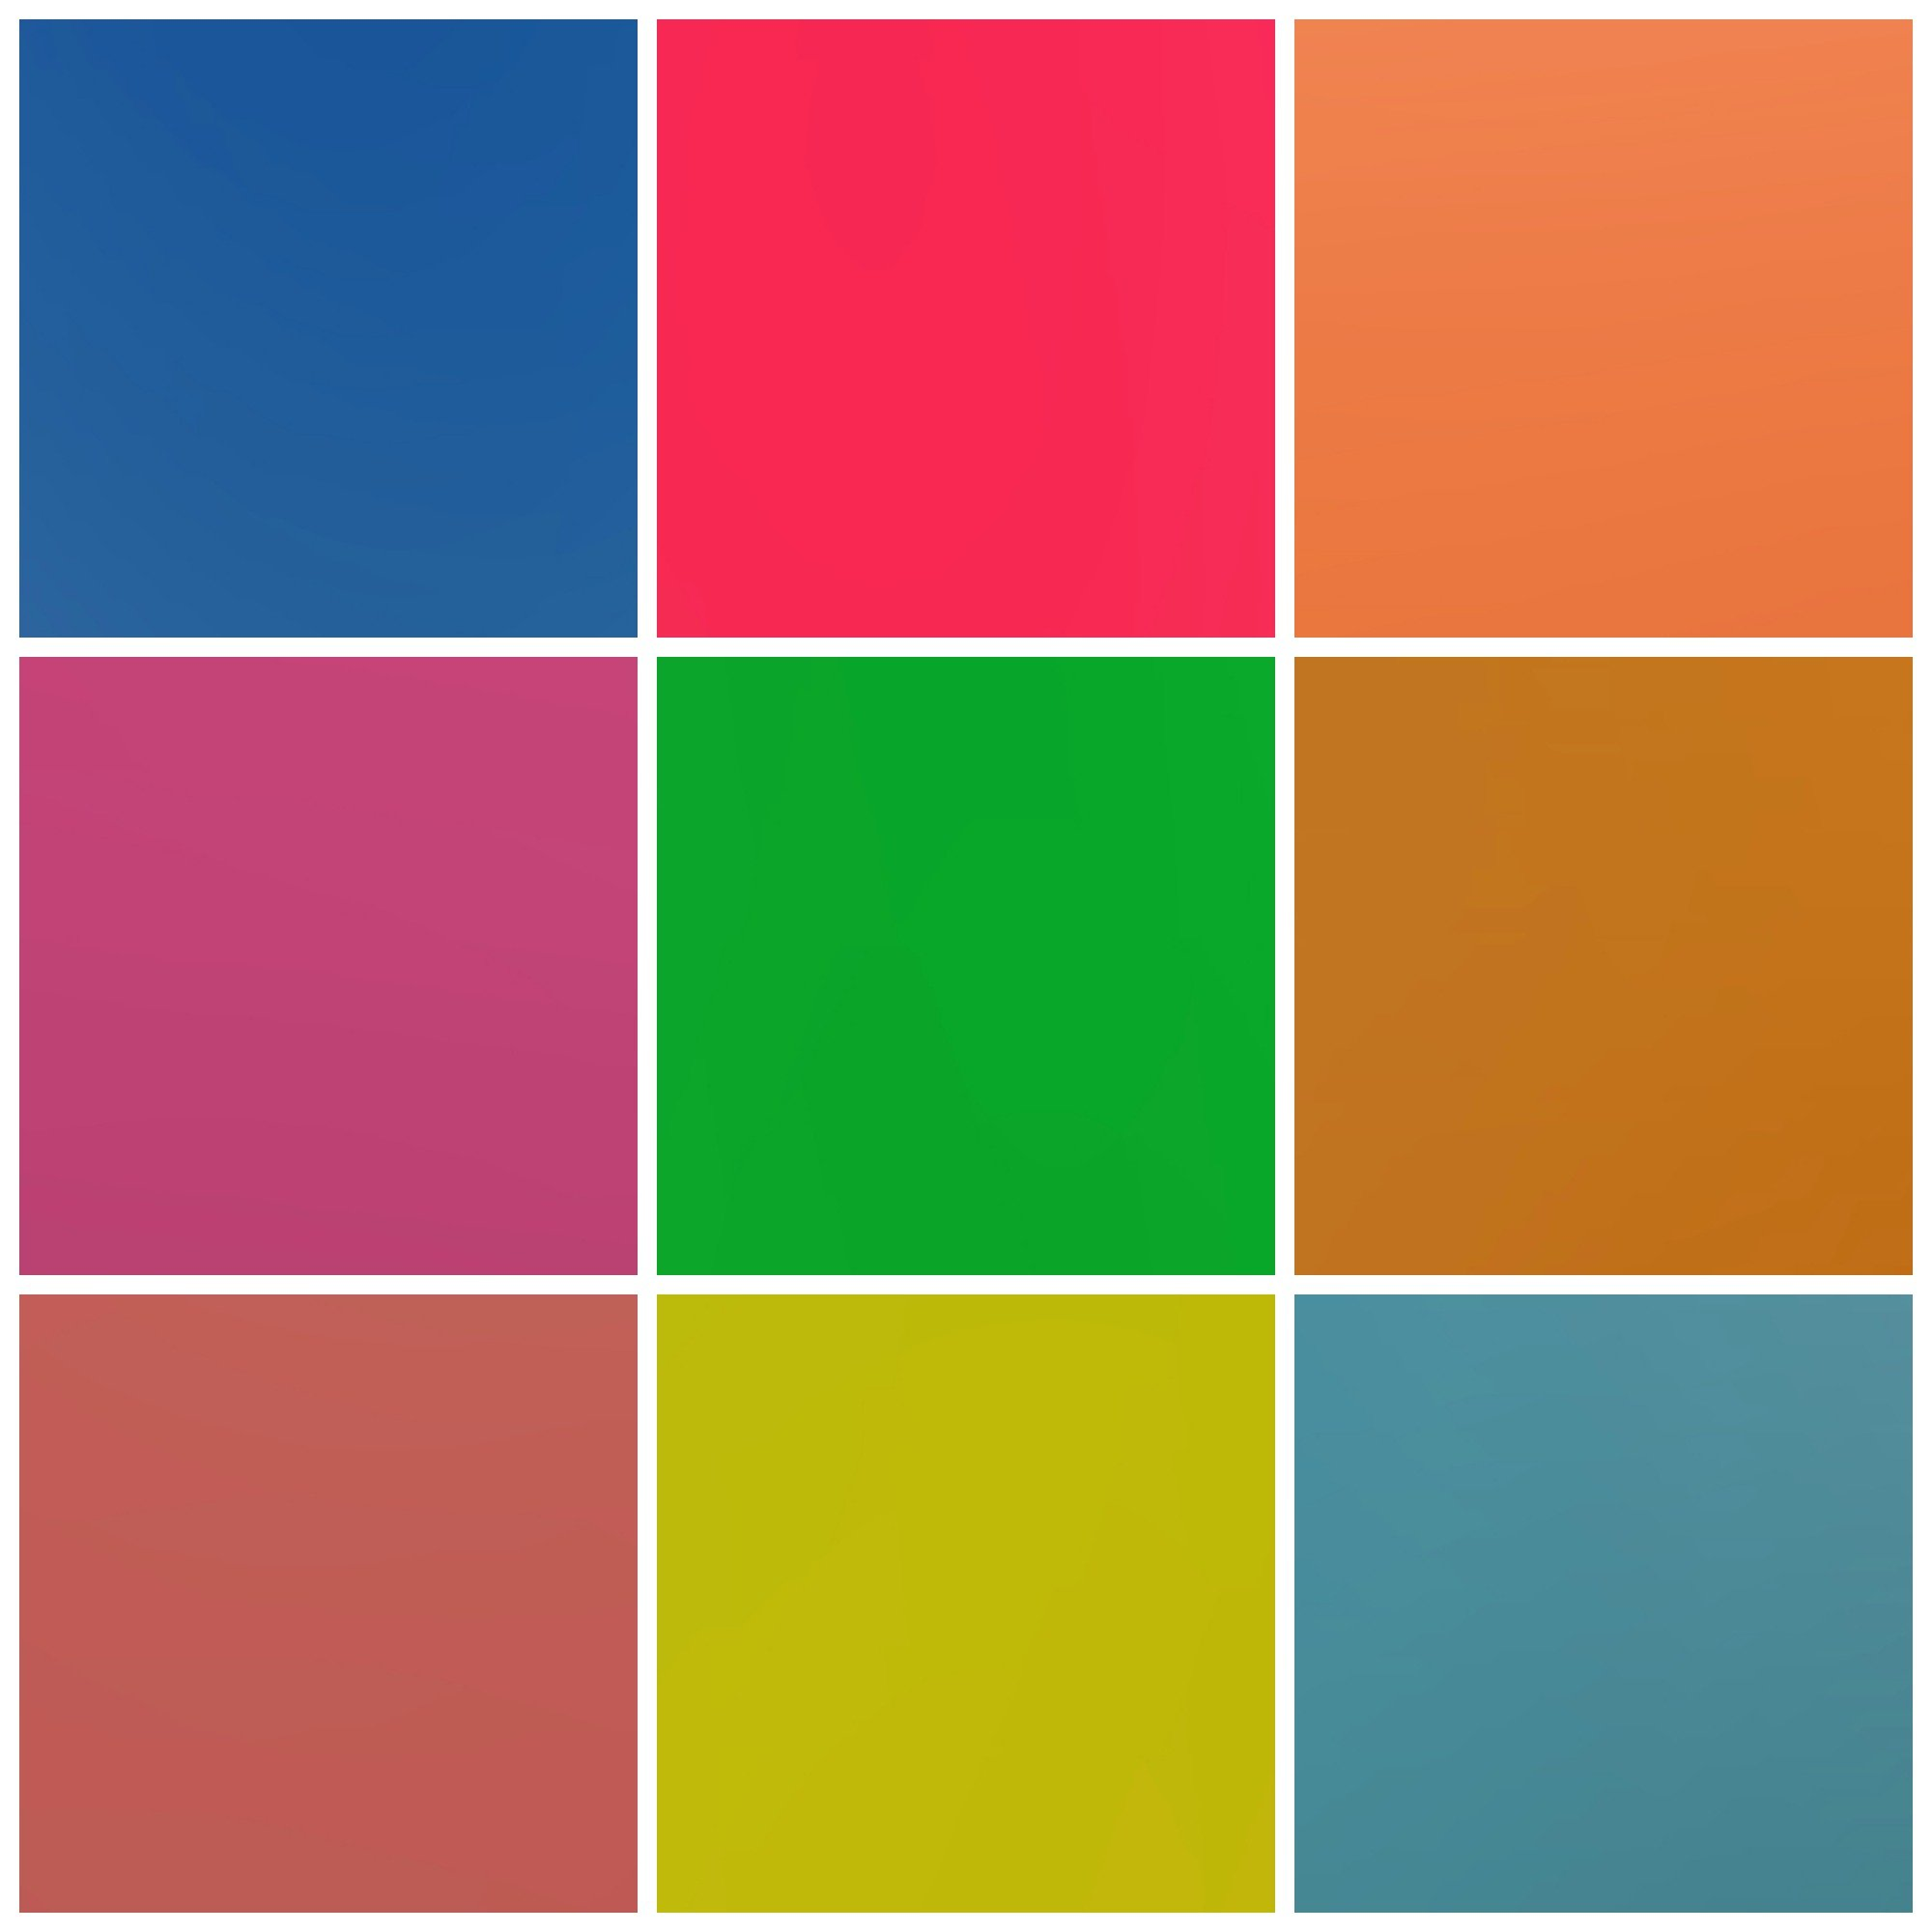 Fluorescent Candle Dye Color Chips Sample Pack - 9 Bright Neon Colors - 180 Dye Chips Northwood Candle